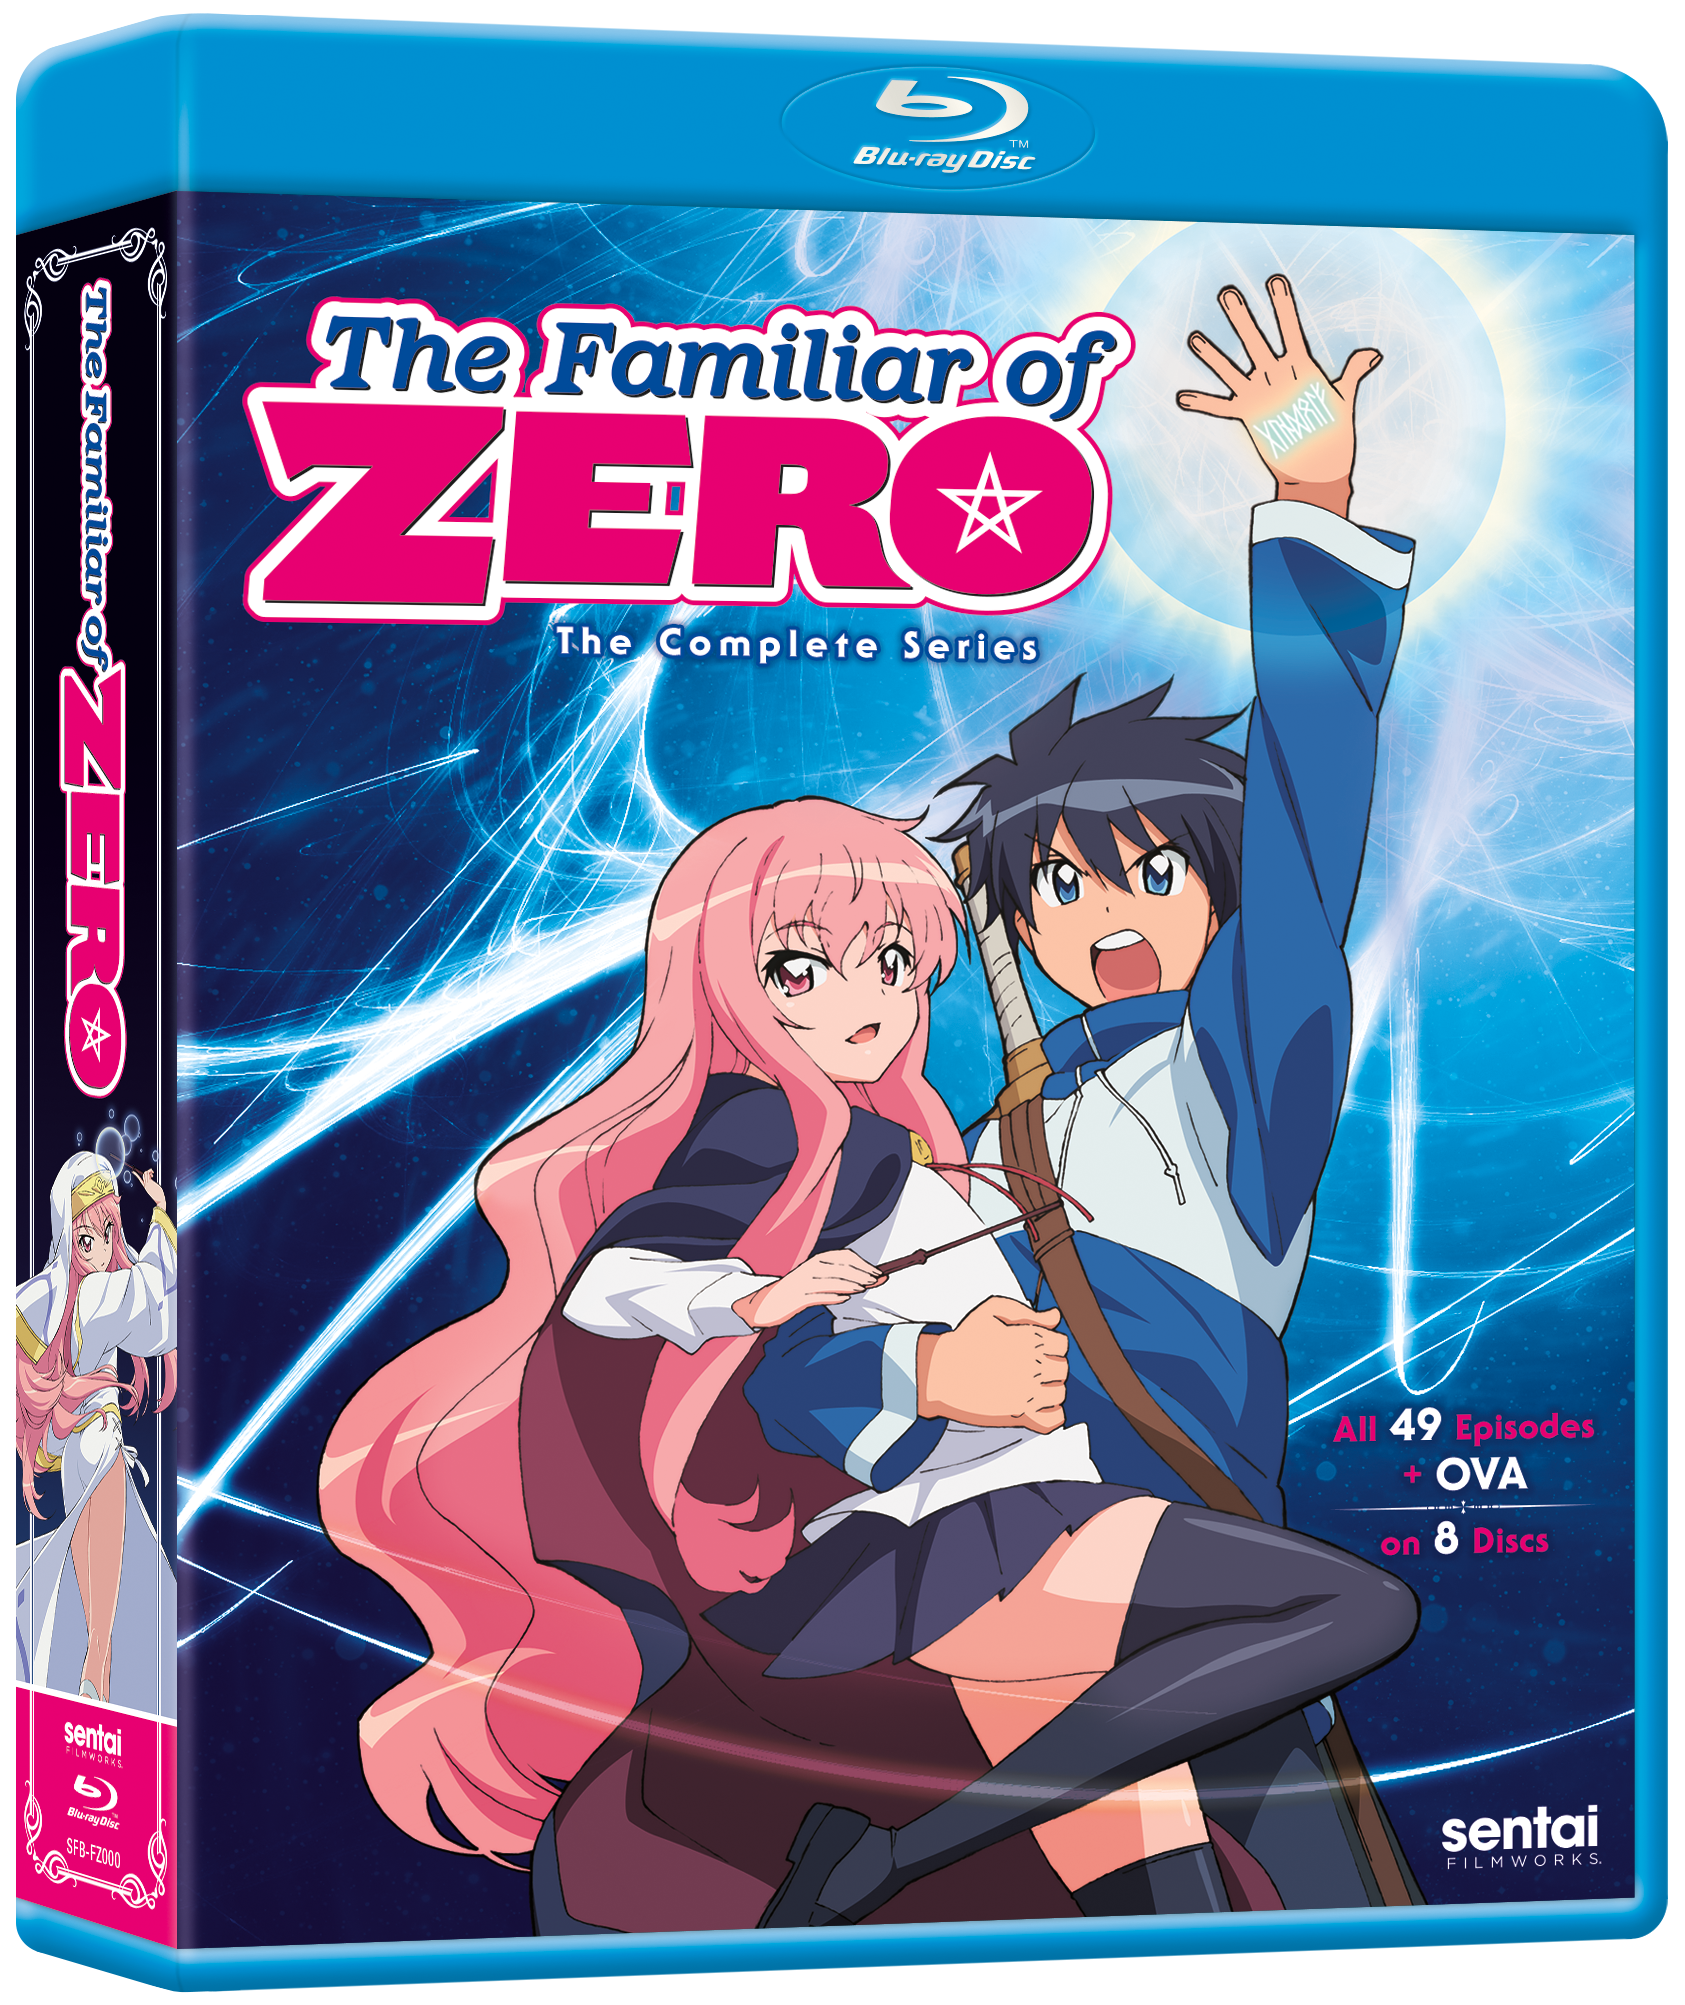 A picture of the The Familiar of Zero The Complete Series Blu-ray.